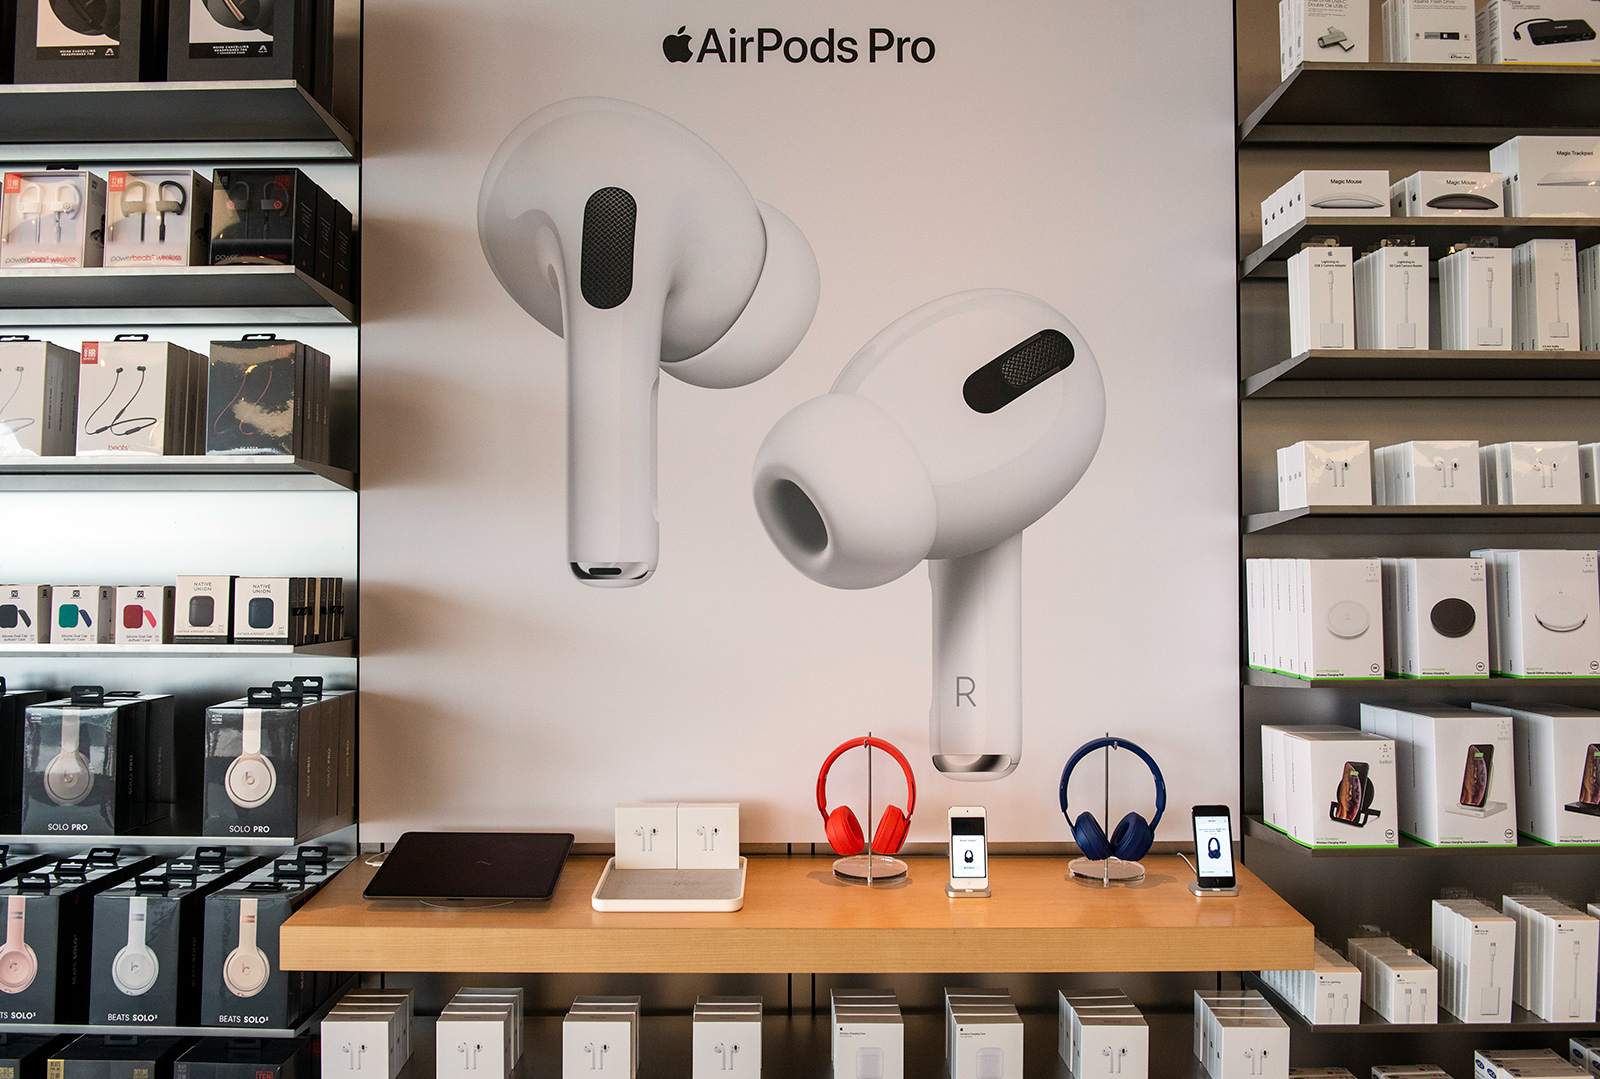 AirPods Pro and AirPods 2 are cheaper today at Amazon than they were on Black Friday